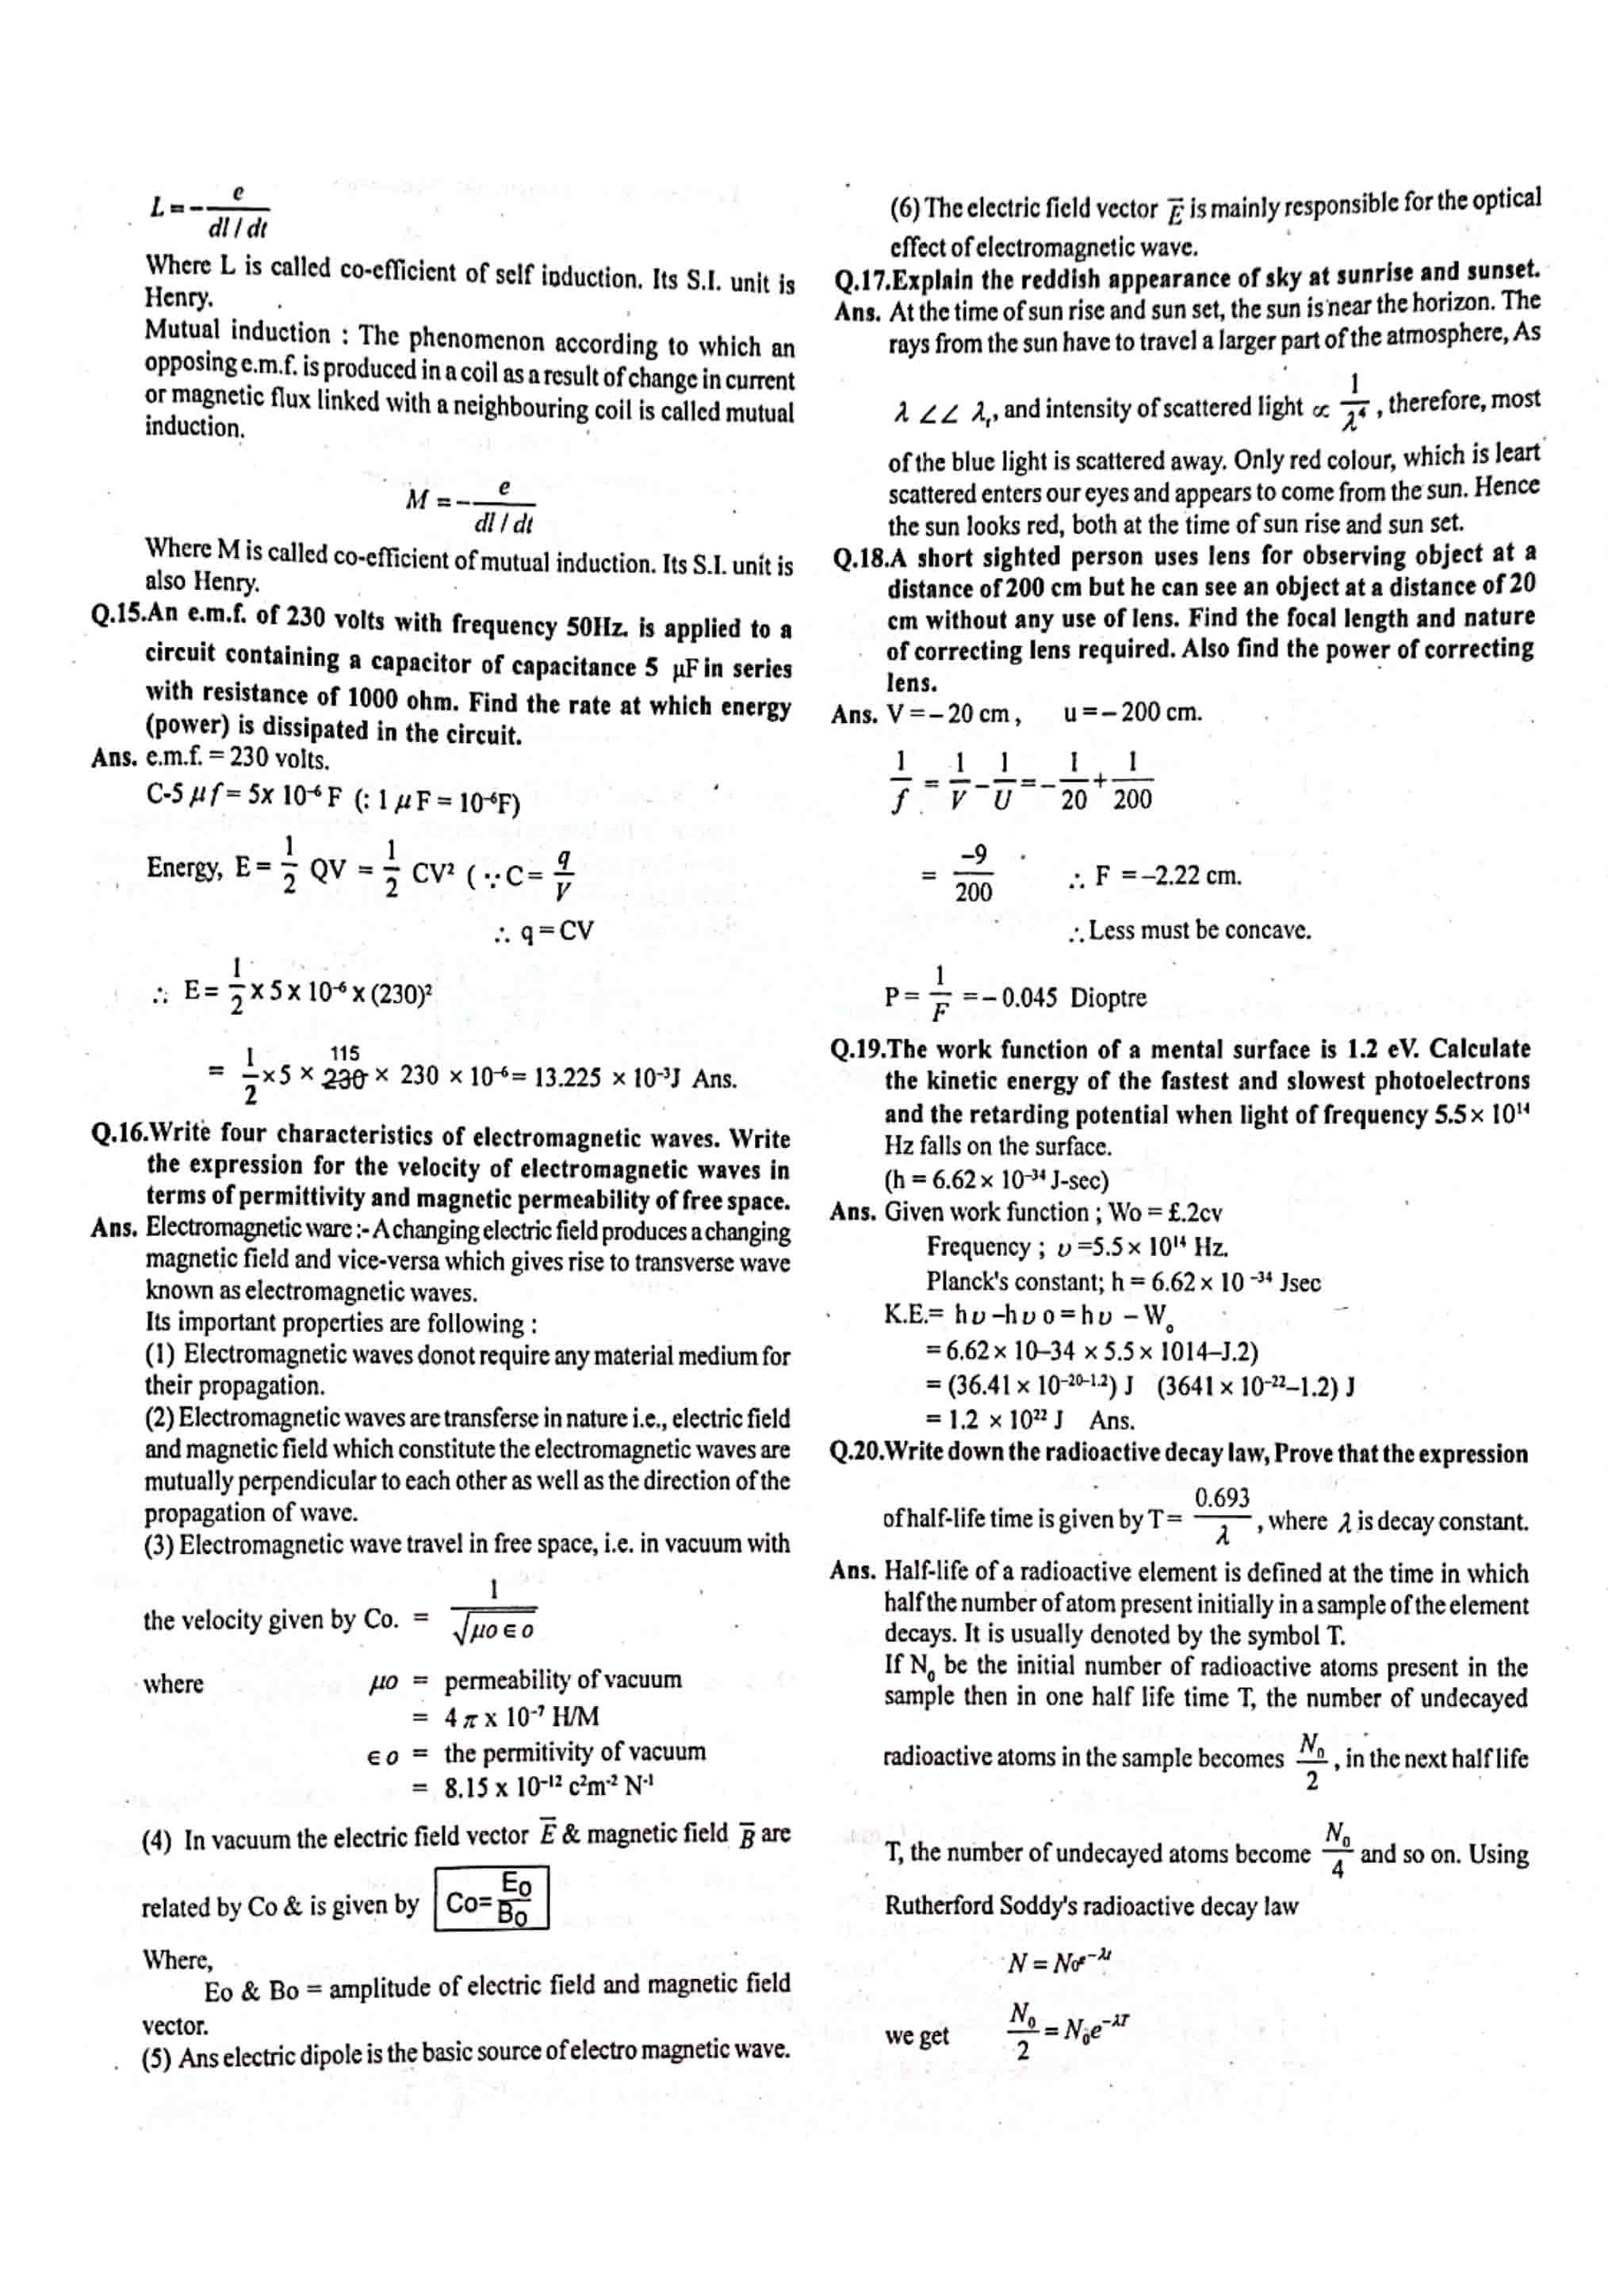 JAC Class 12 Physics 2013 Question Paper 03